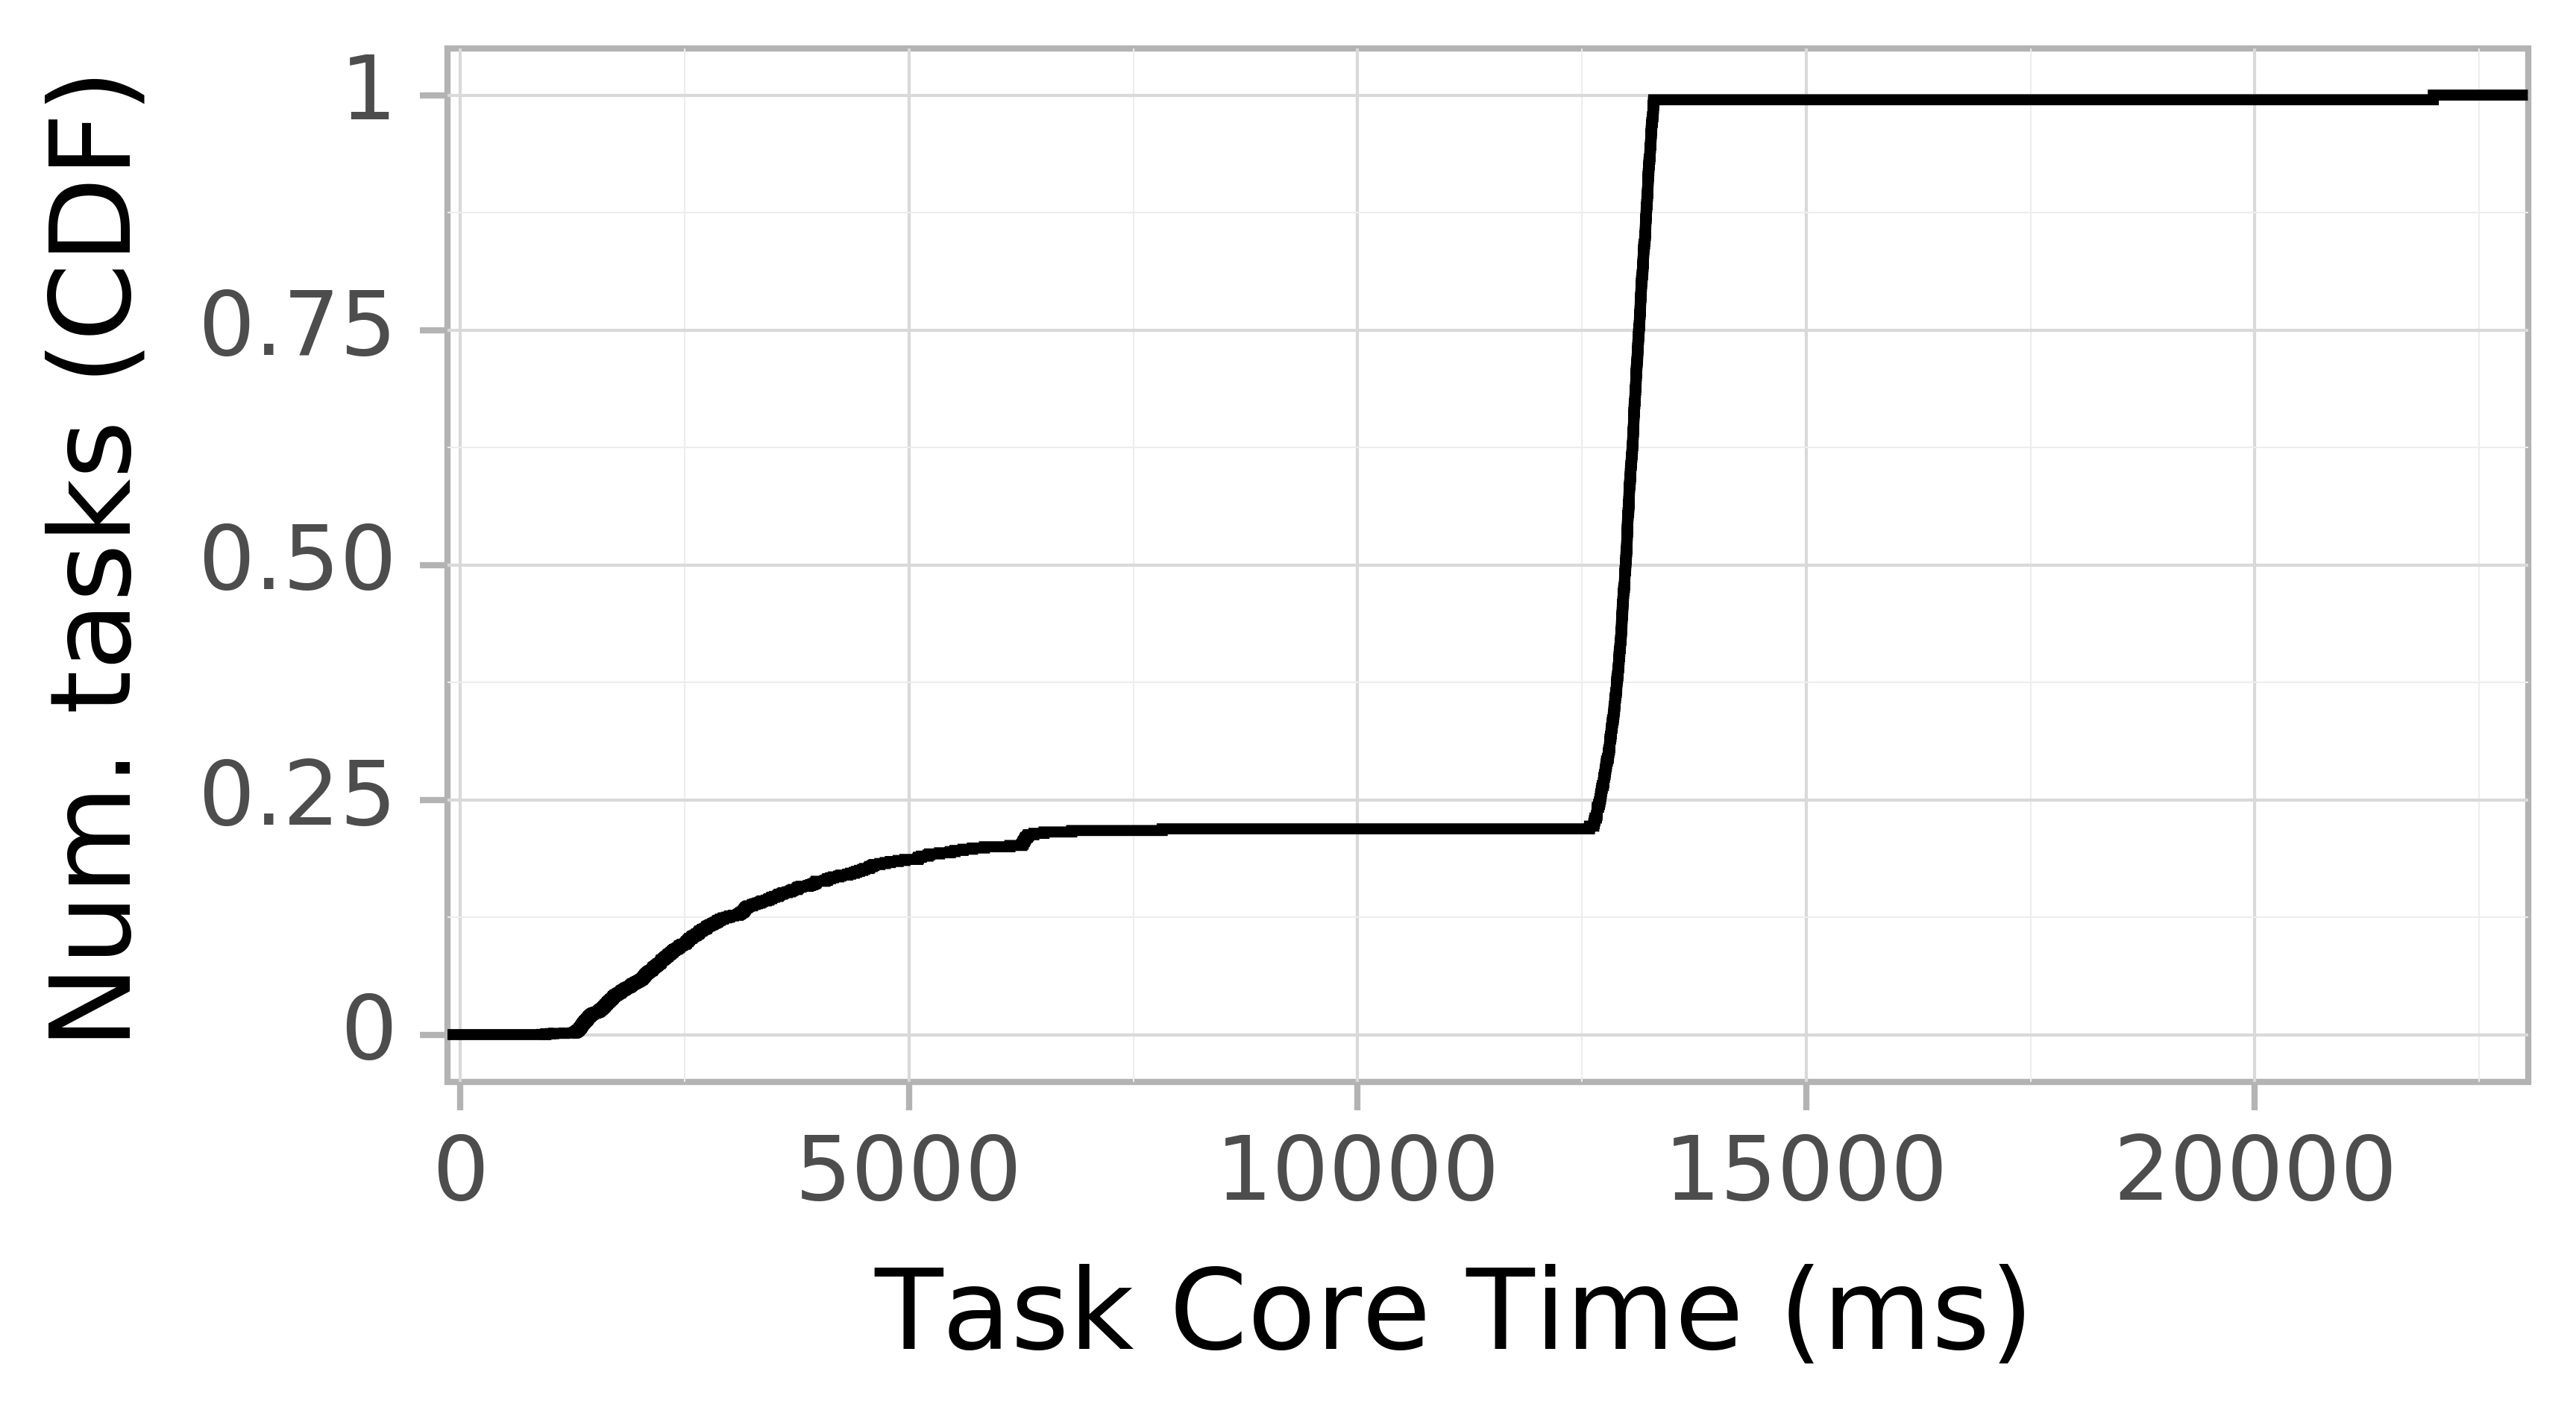 task resource time CDF graph for the askalon-new_ee21 trace.